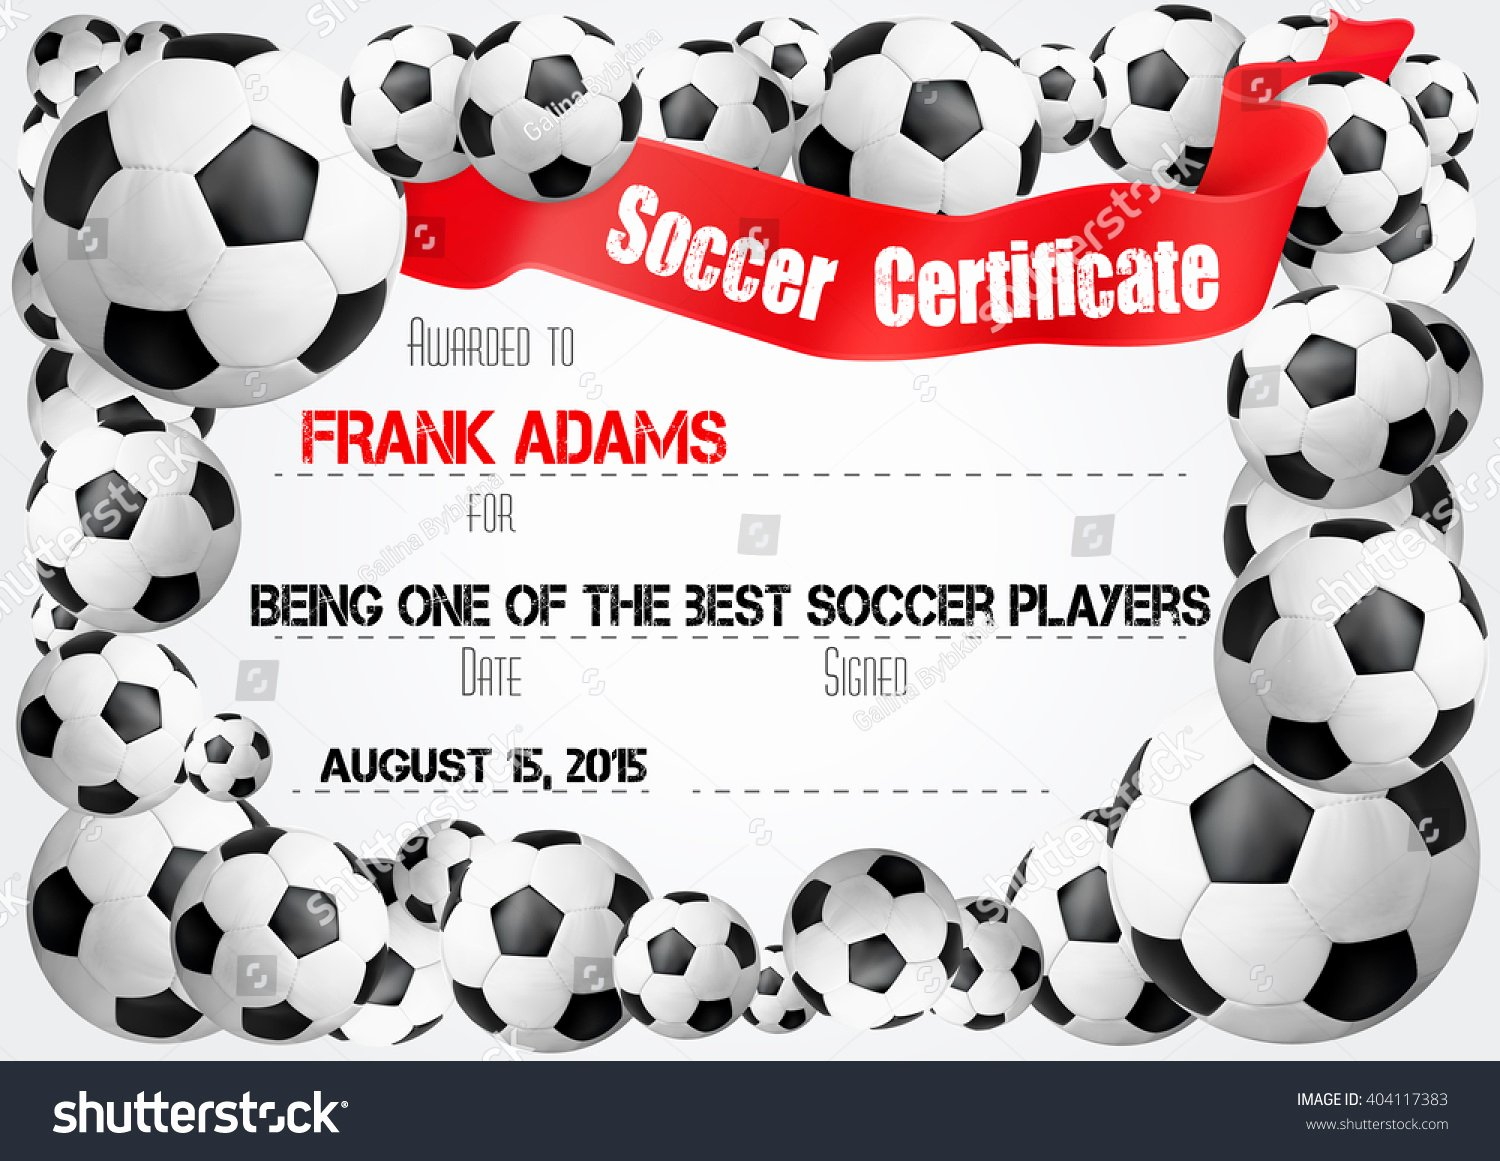 Soccer Awards Template Luxury soccer Certificate Template Football Ball Icons เวกเตอร์